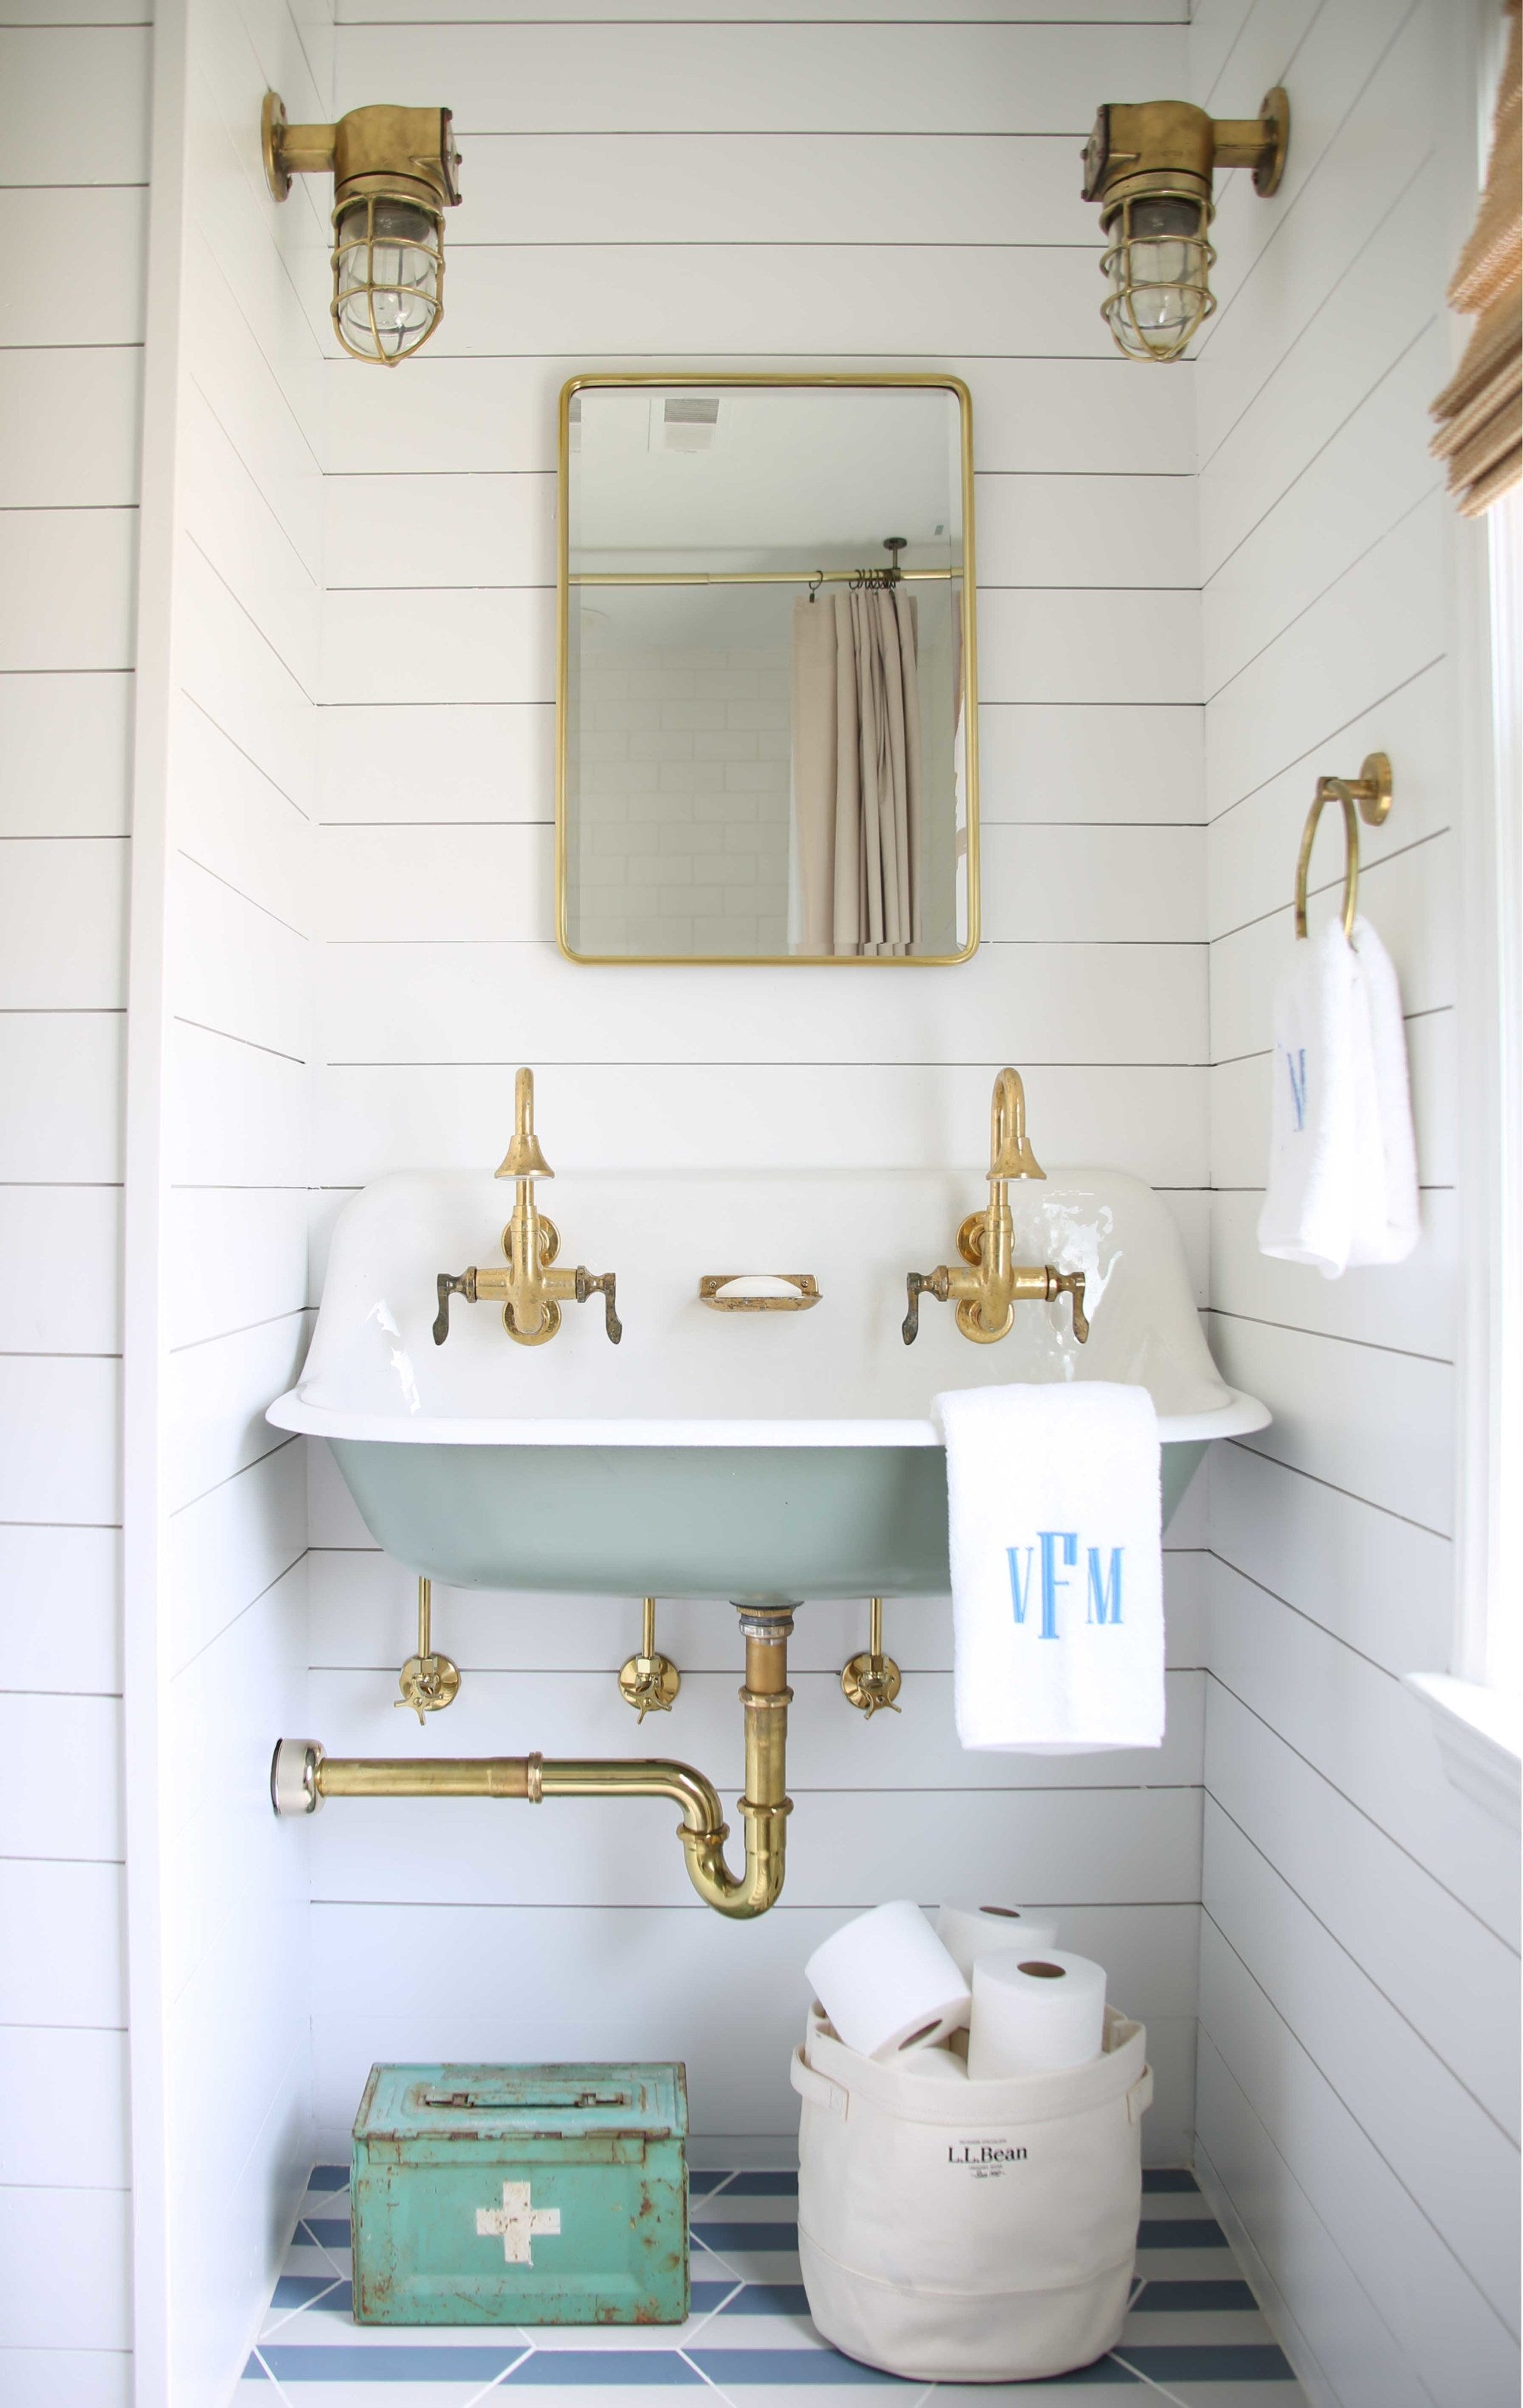 The perfect small bathroom remodel idea? Add shiplap to your walls, paint it white with Clare's Fresh Kicks, and finish it off with a vintage nautical-inspired sink.